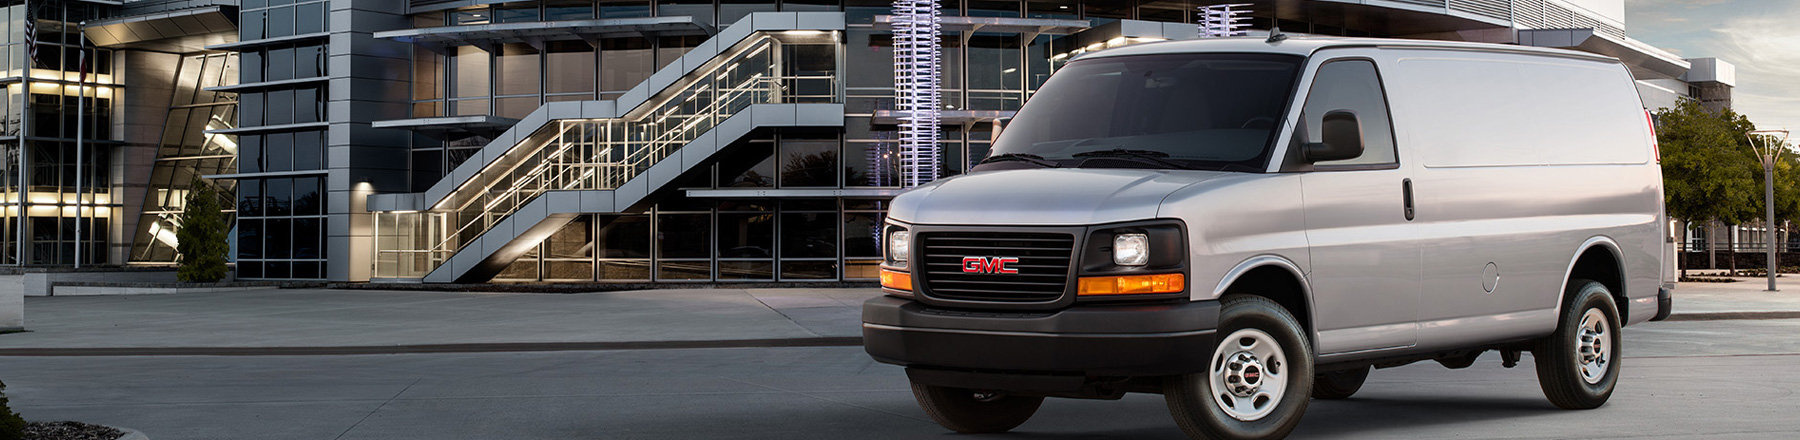 GMC Savana model in Airdrie, AB